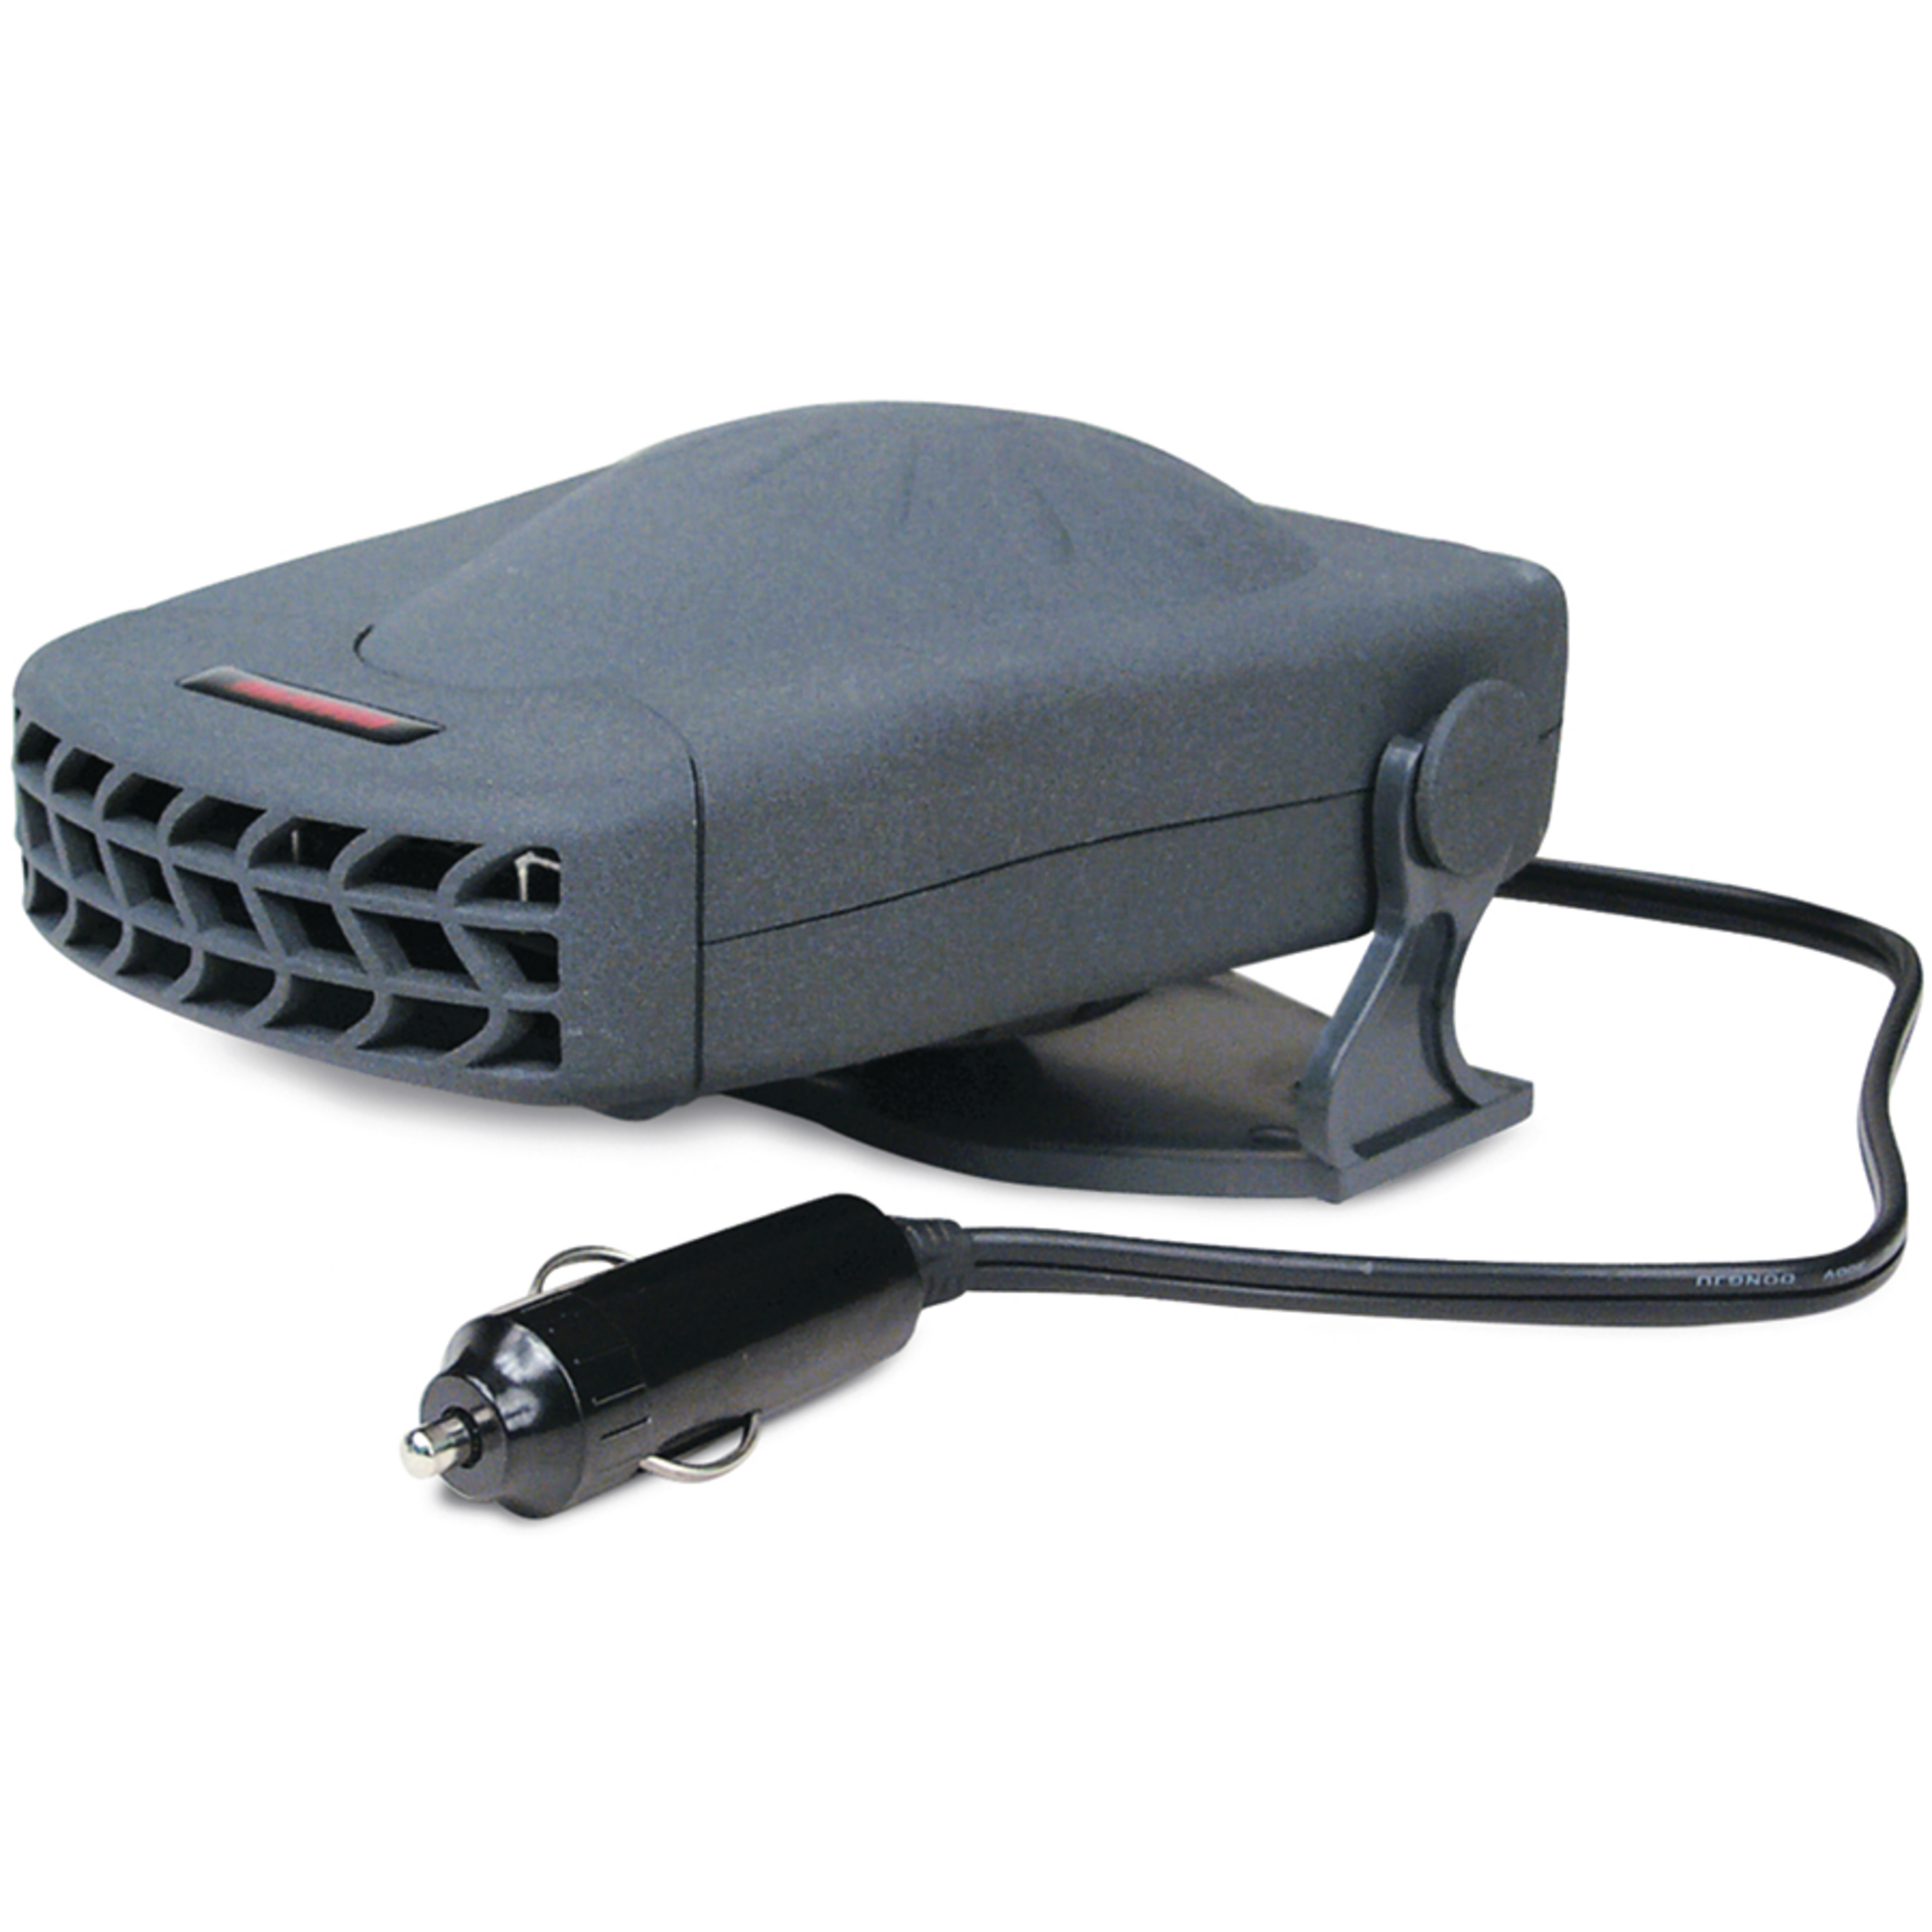 "RoadPro RPSL-581 12V ""All Season"" RV Heater & Fan with Swivel Base & 6' Power Cord"